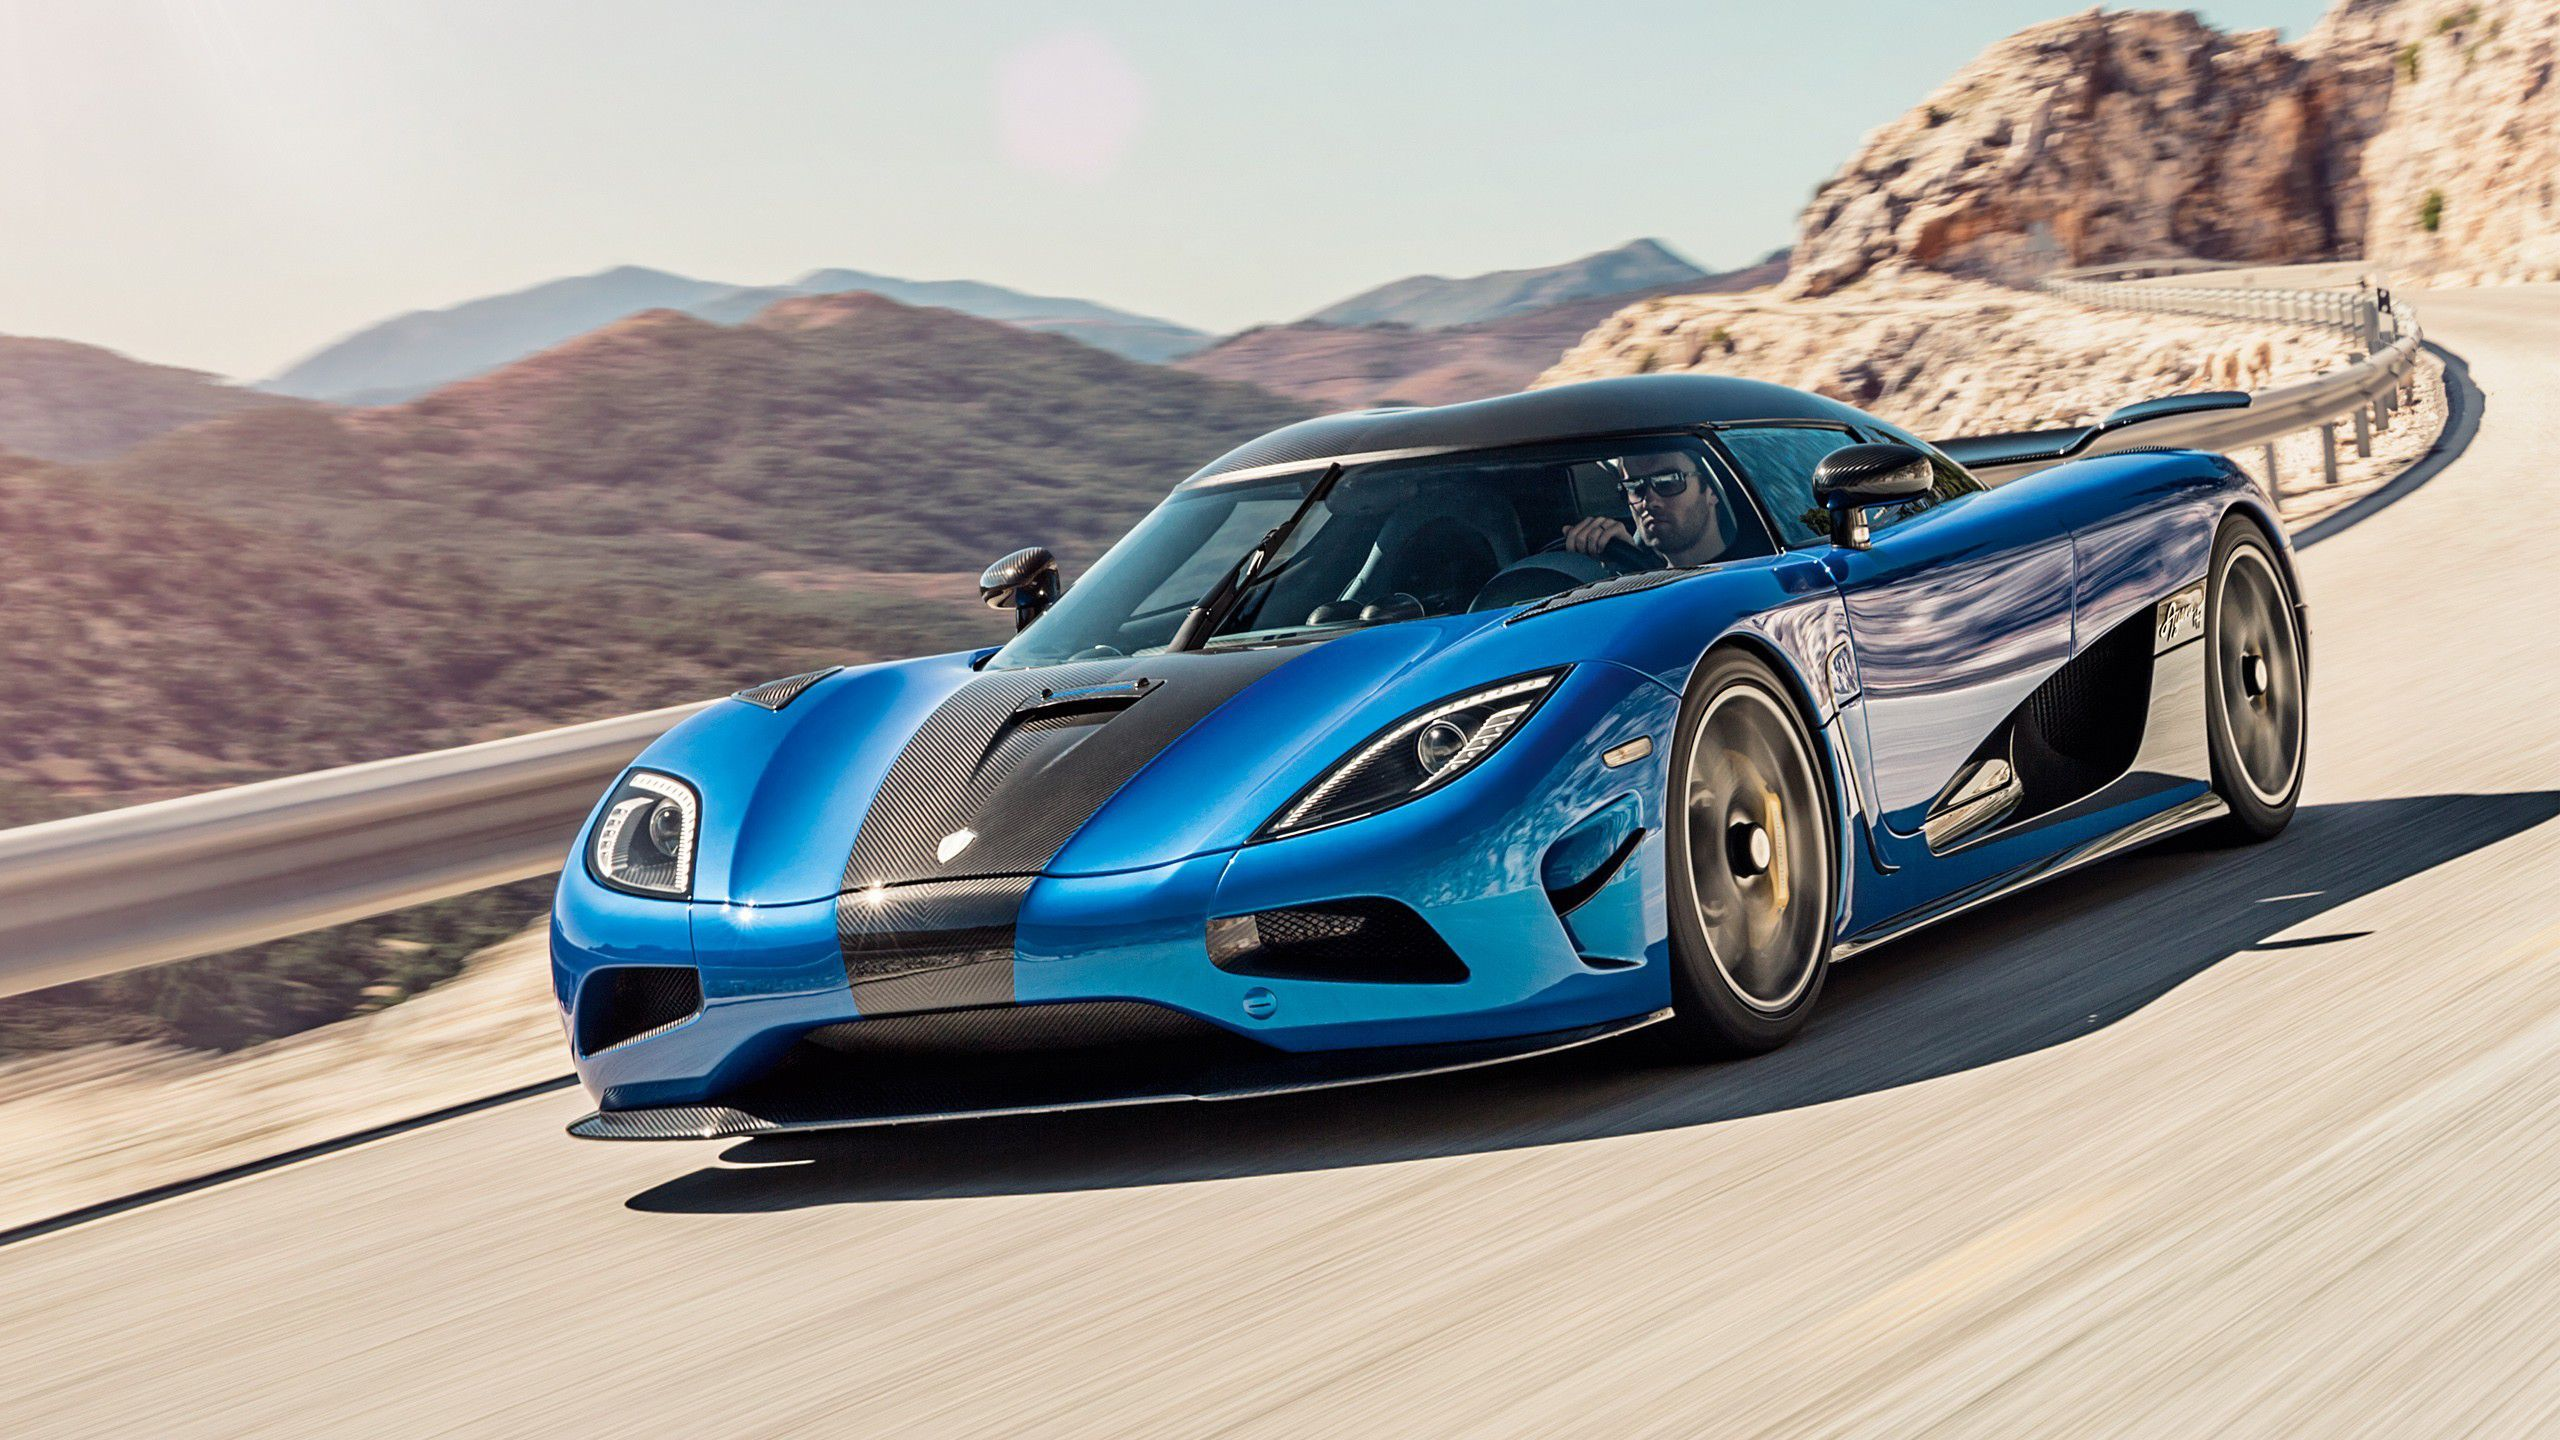 Blue Koenigsegg Agera R Wallpapers Top Free Blue